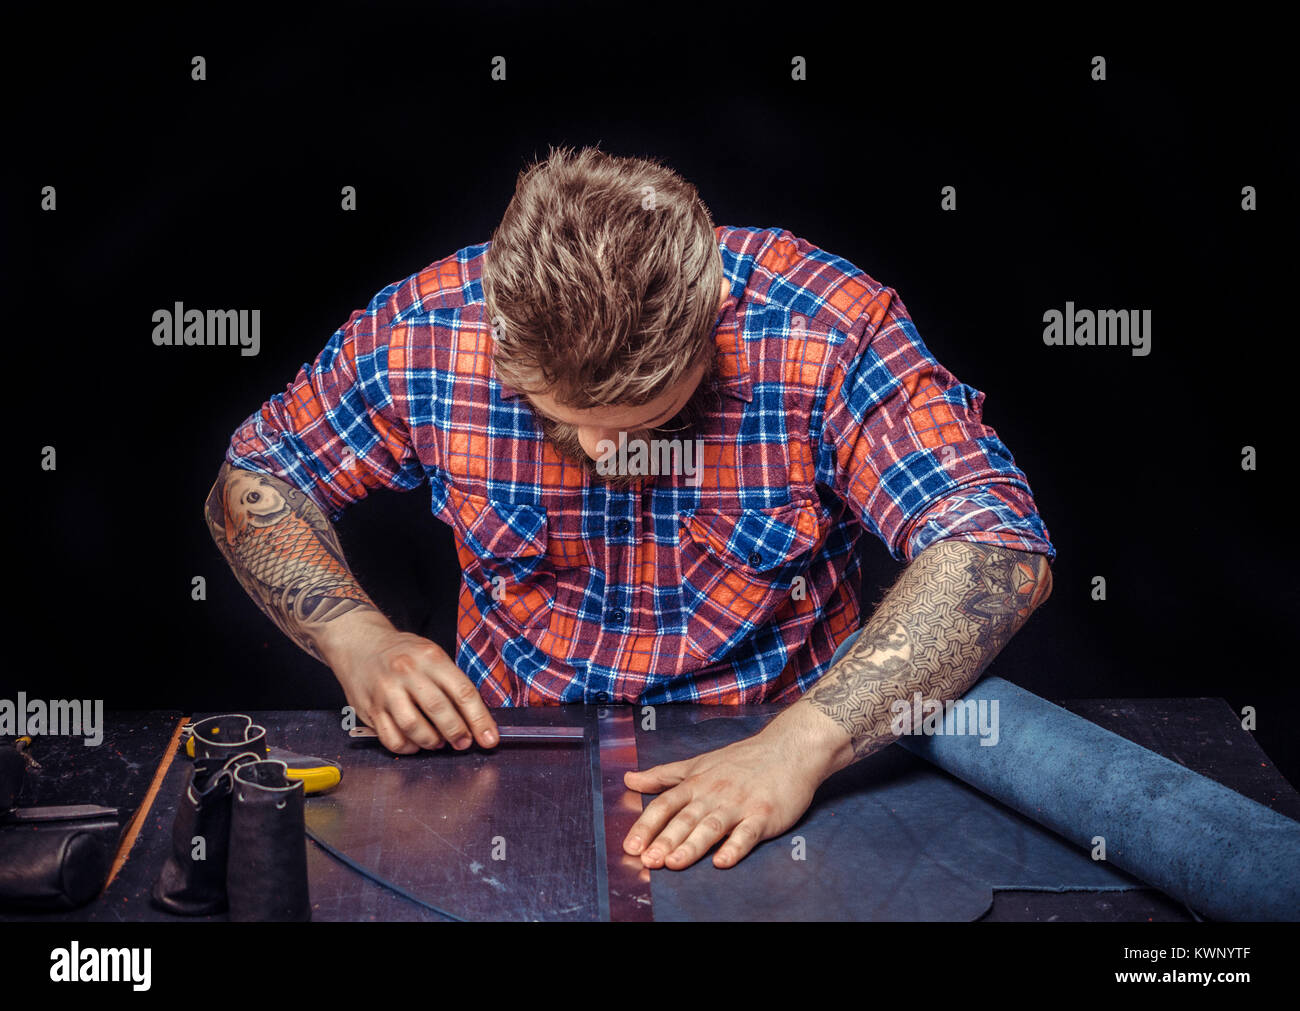 Tanner focusing on his work at the desk Stock Photo